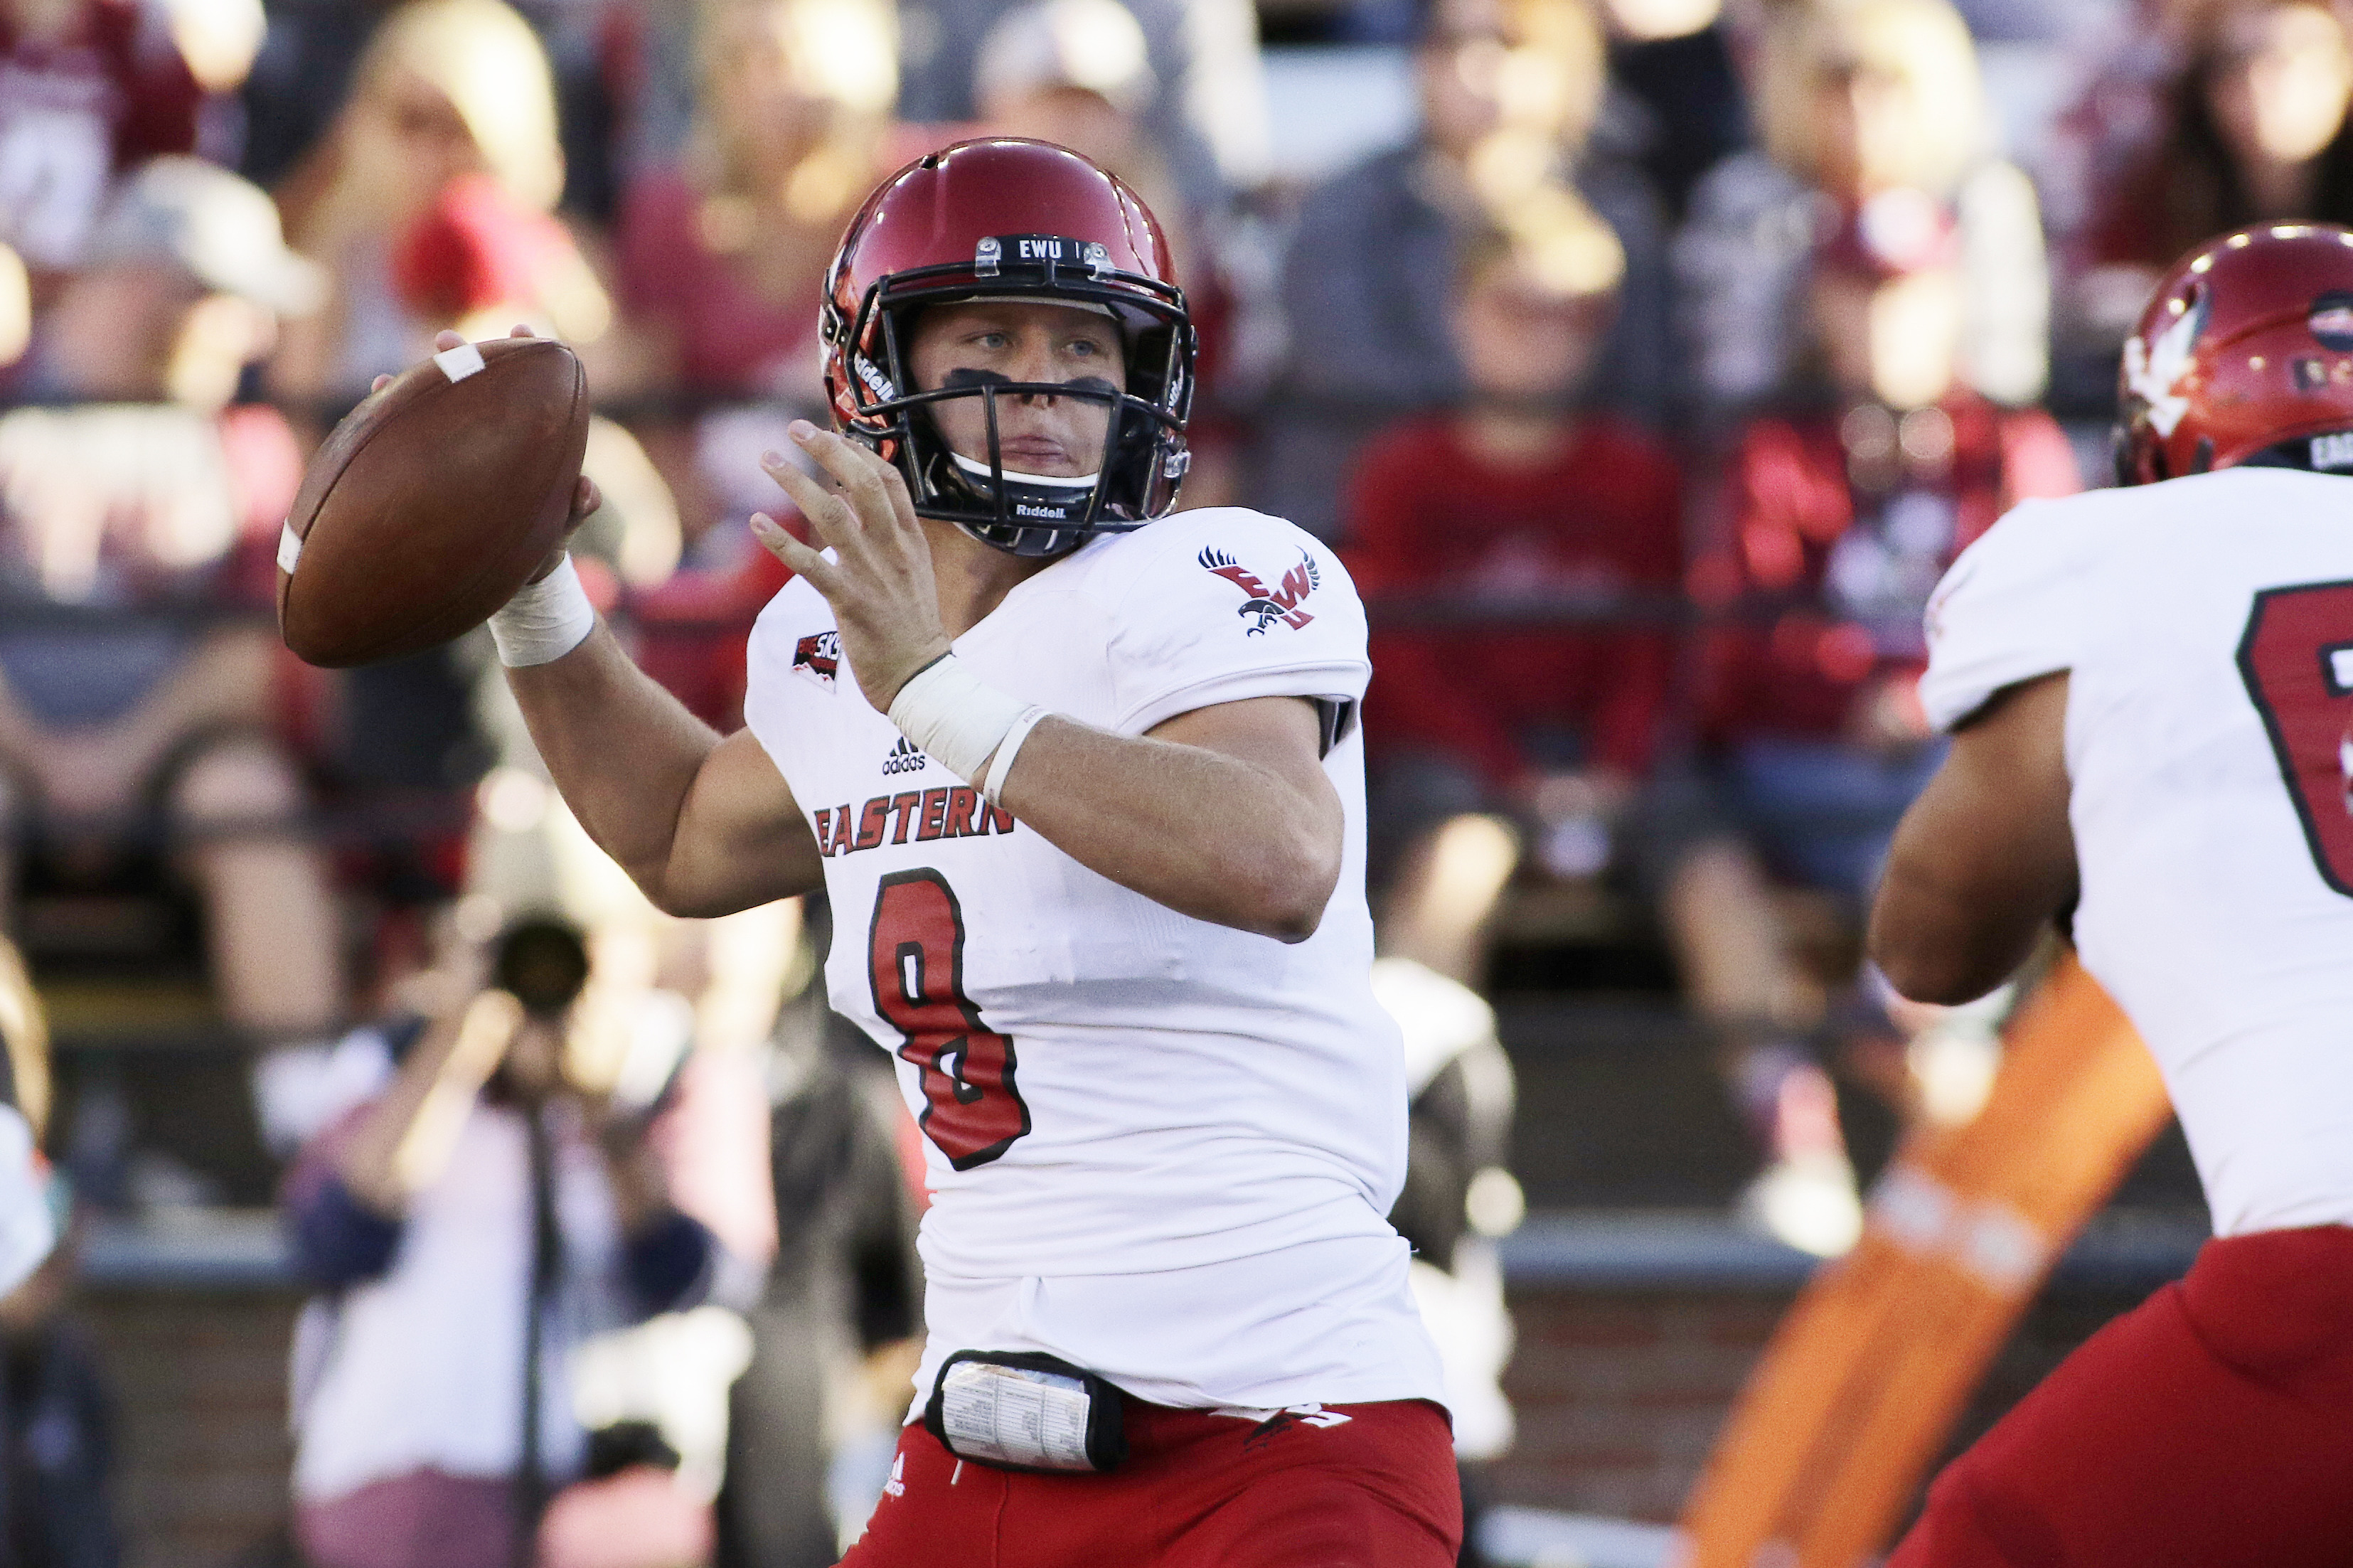 Eastern Washington quarterback Gage Gubrud (8) looks to pass during the first half of an NCAA college football game against the Washington State in Pullman, Wash., Saturday, Sept. 3, 2016. (AP Photo/Young Kwak)